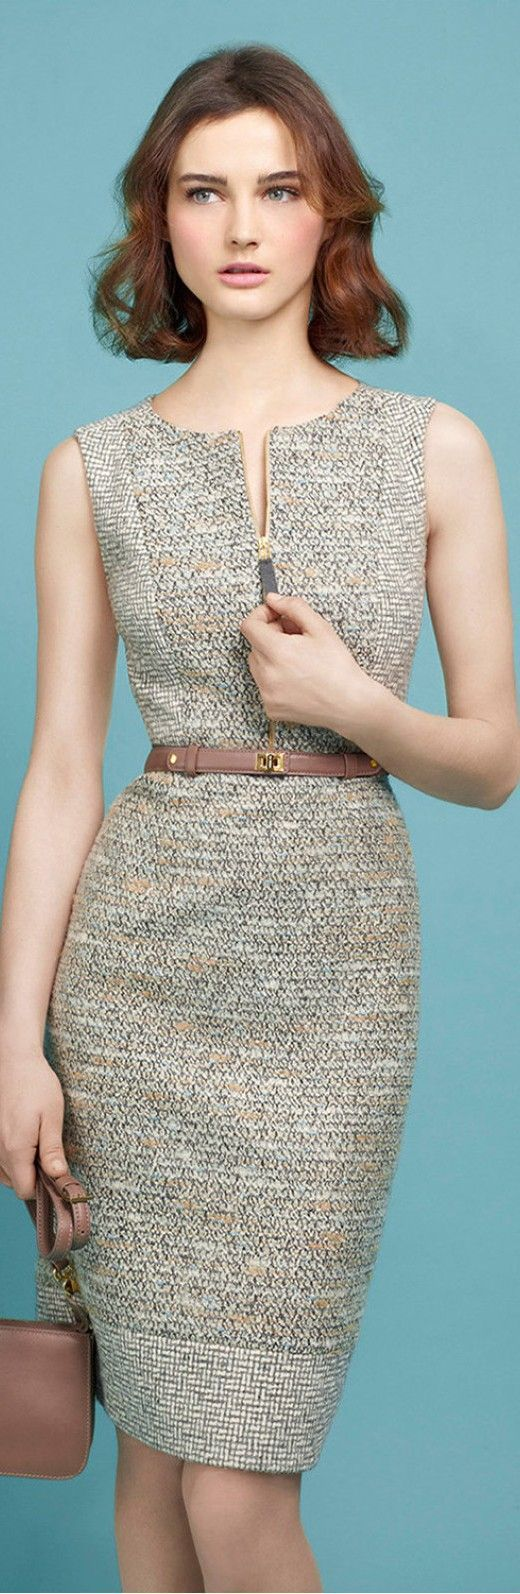 Business outfit for women 08